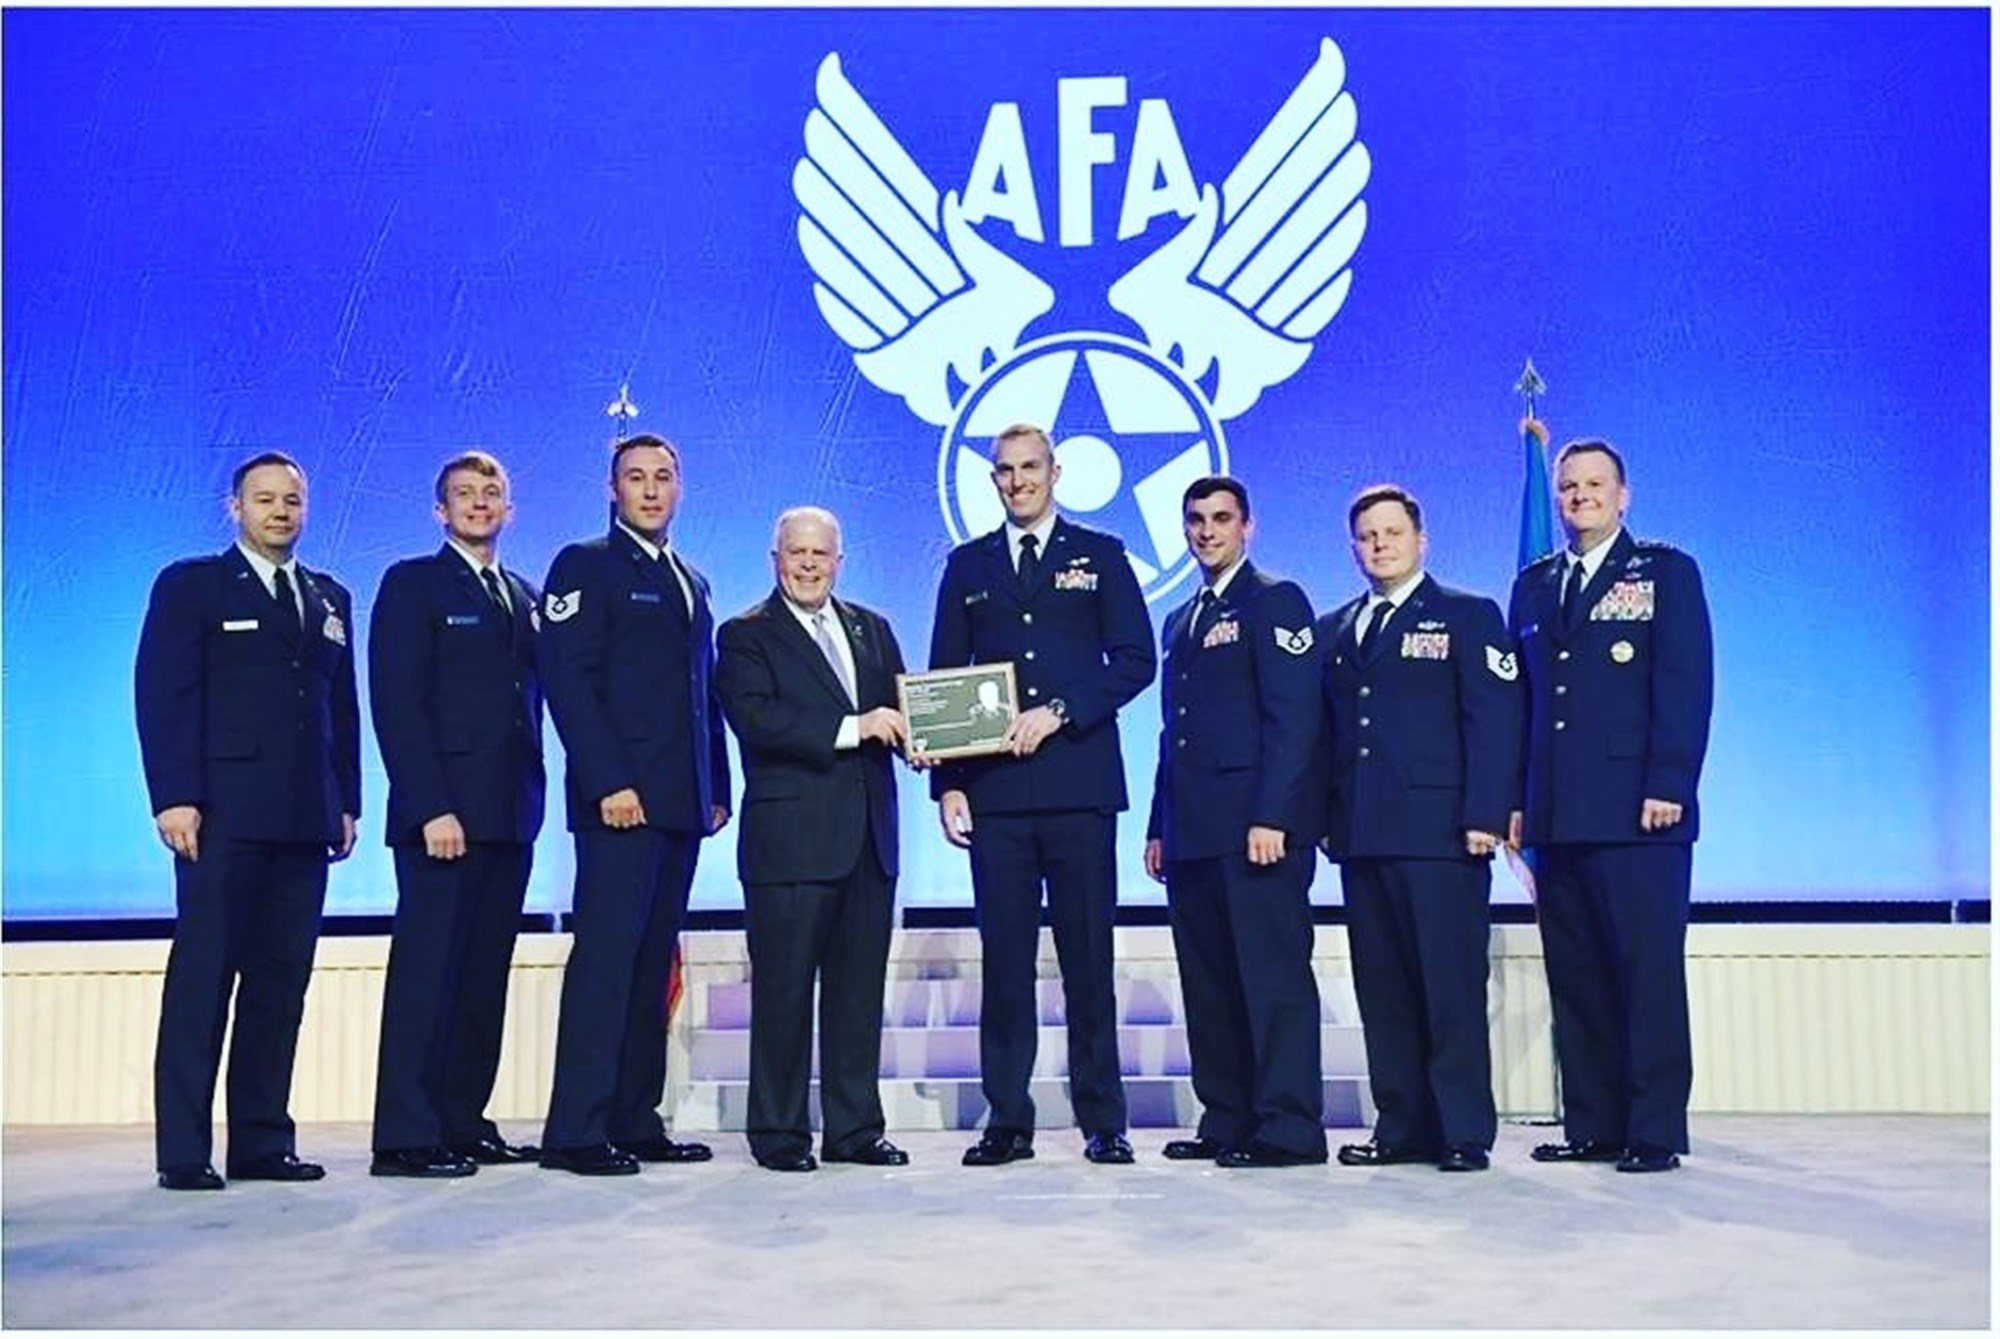 U.S. Air Force 17th Special Operations Squadron Air Commandos accept the Brigadier General Ross Hoyt award Sept. 18, 2017, at the Air Force Association National Convention in Washington D.C. The crew of JAKAL 11 received the Air Force level award for the heroic actions following an aircraft mishap. (Courtesy photo)